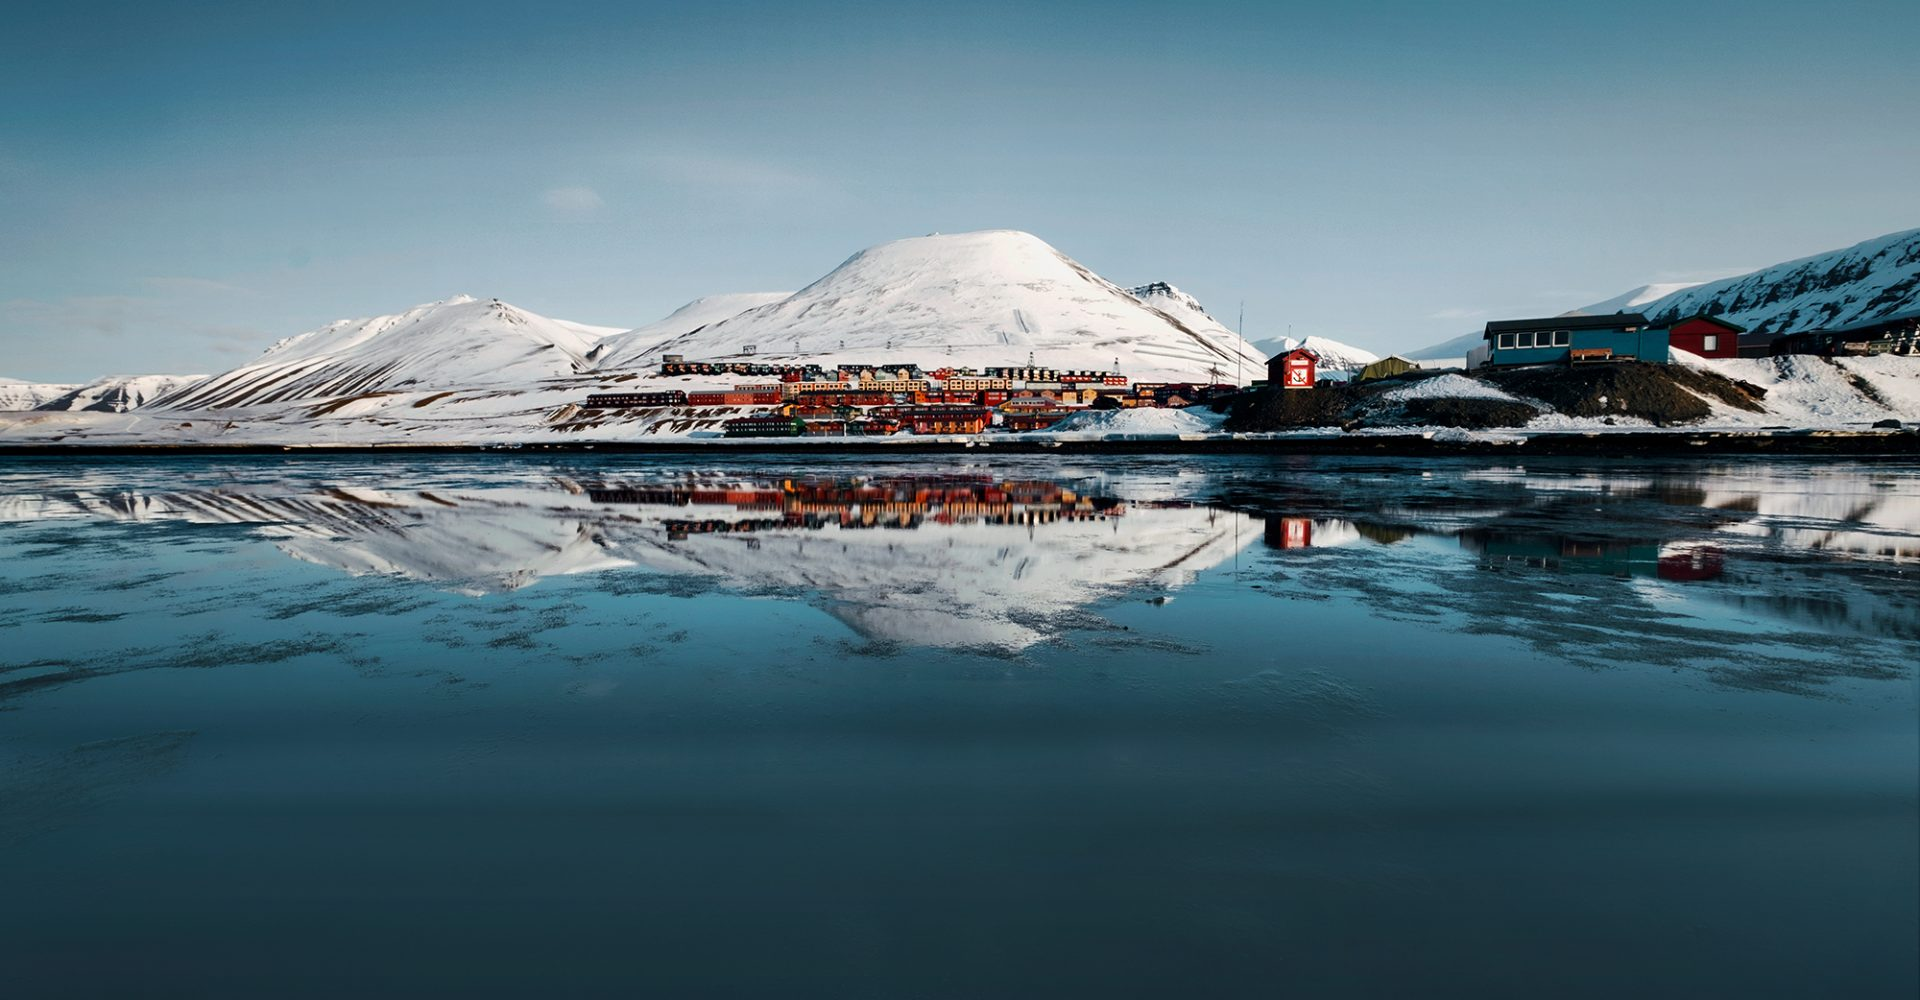 Longyearbyen Water Reflection in Svalbard